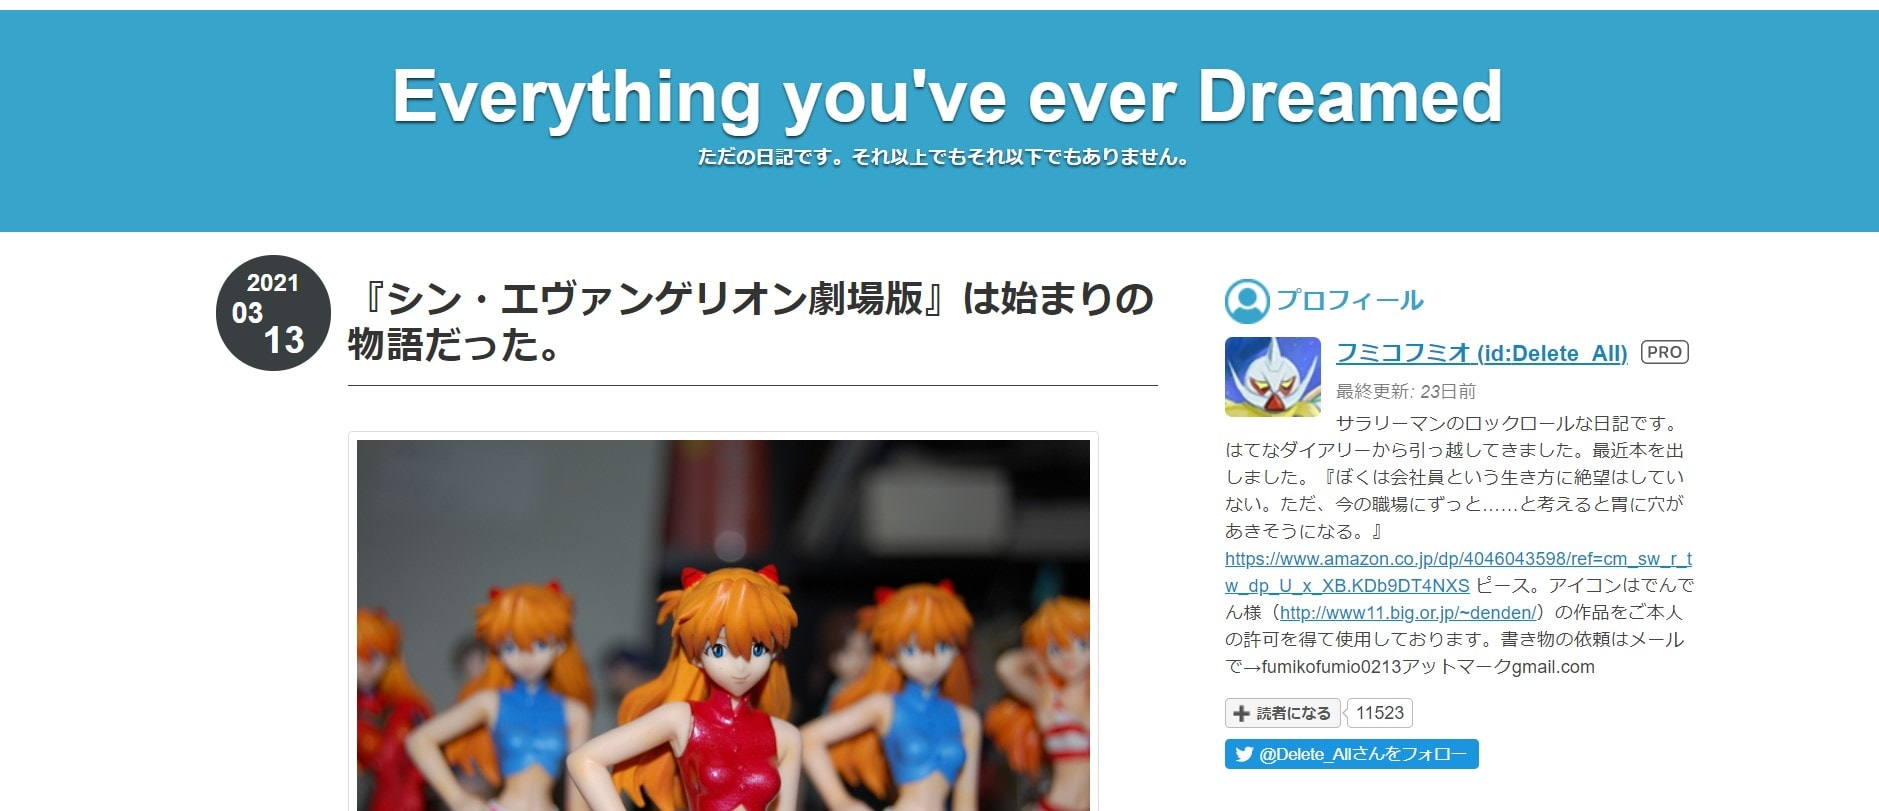 Everything You've Ever Dreamedの画像